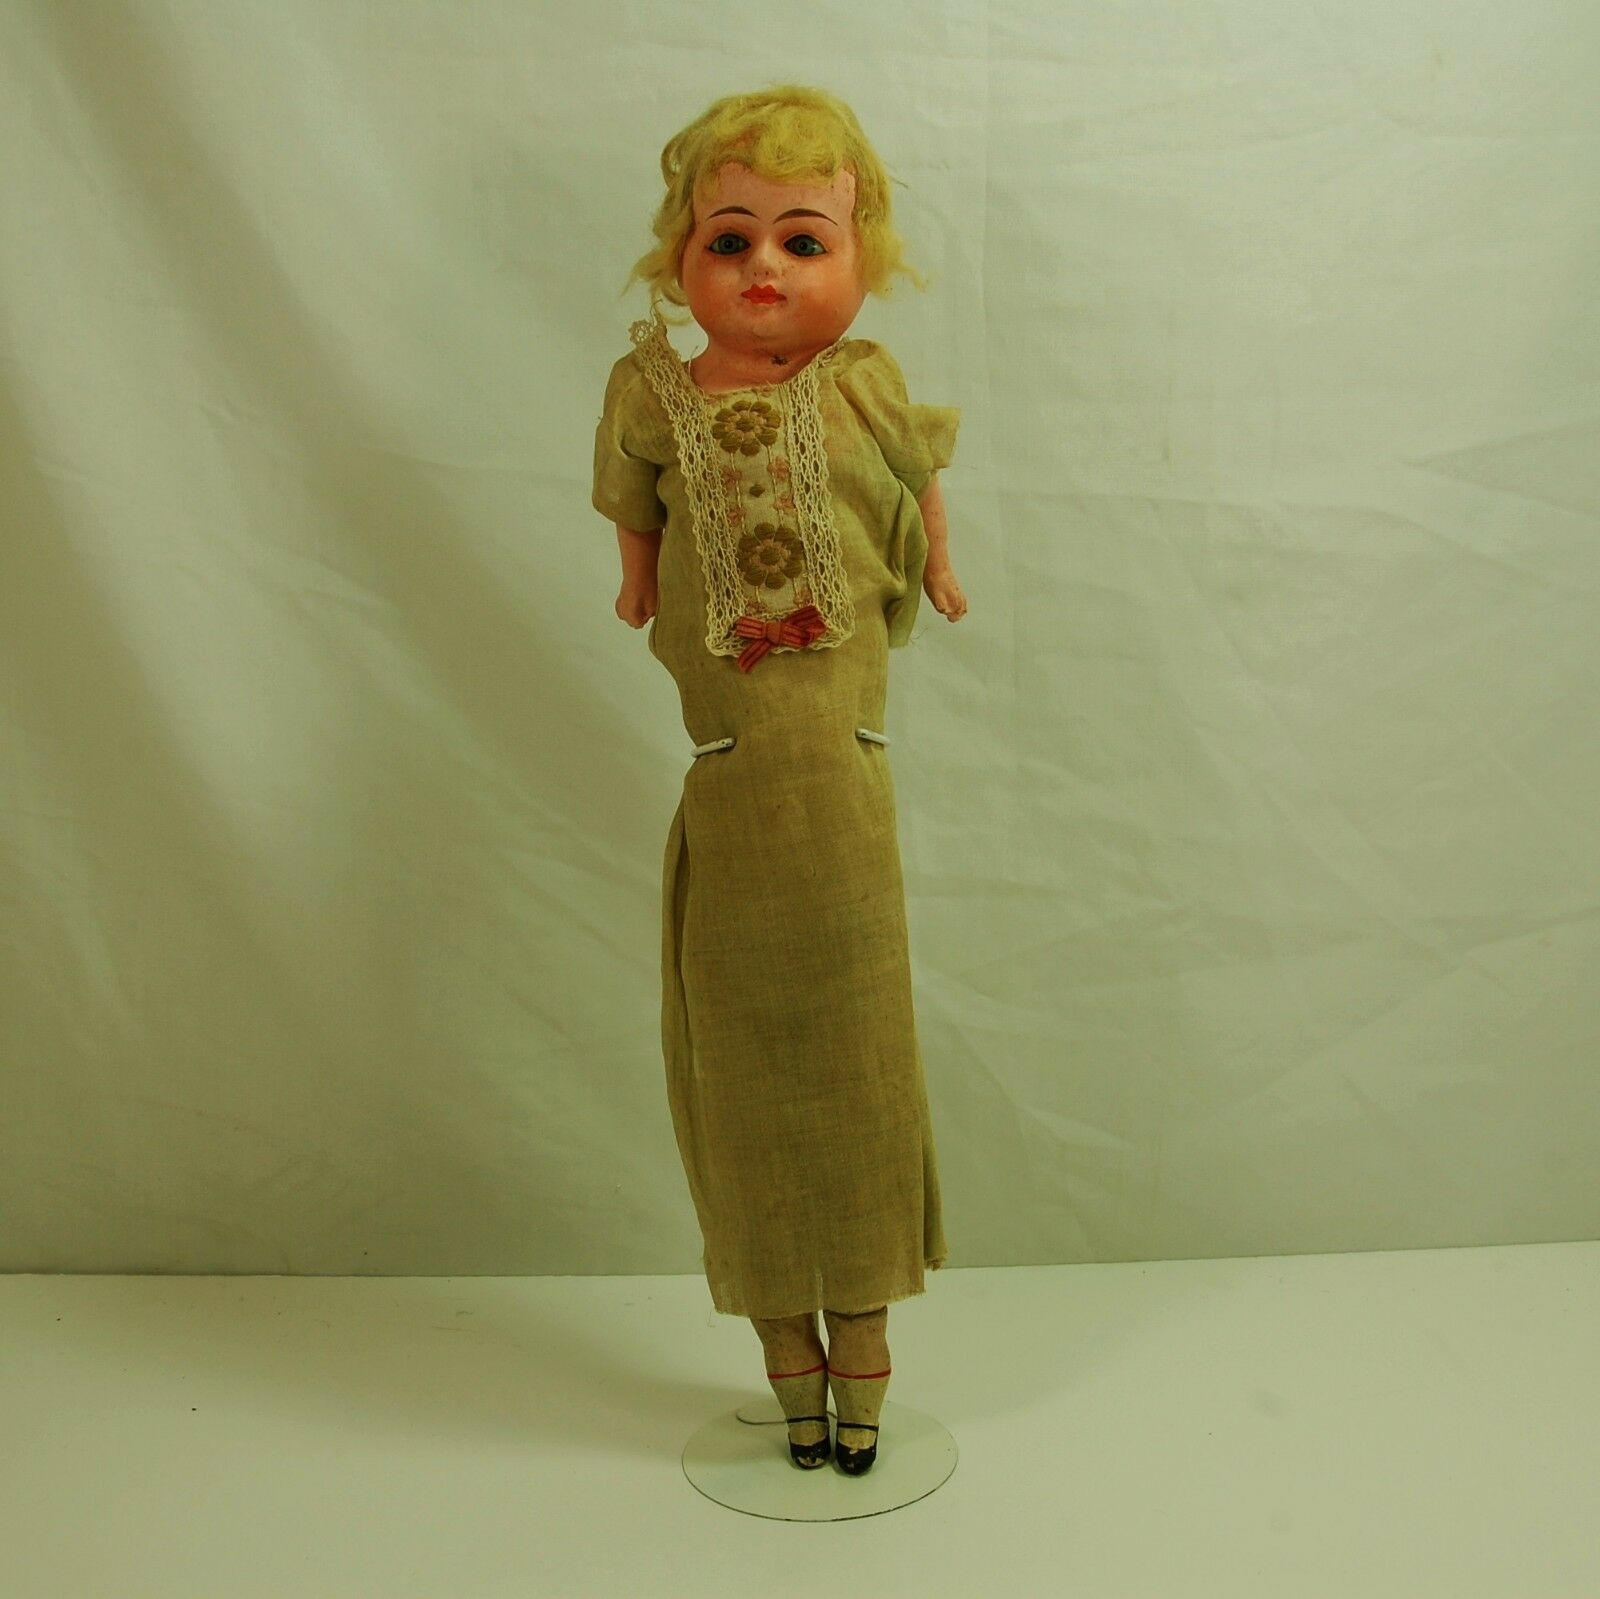 Early Antique German Paper Mache/ straw Doll Glass Eyes Painted Mouth 21